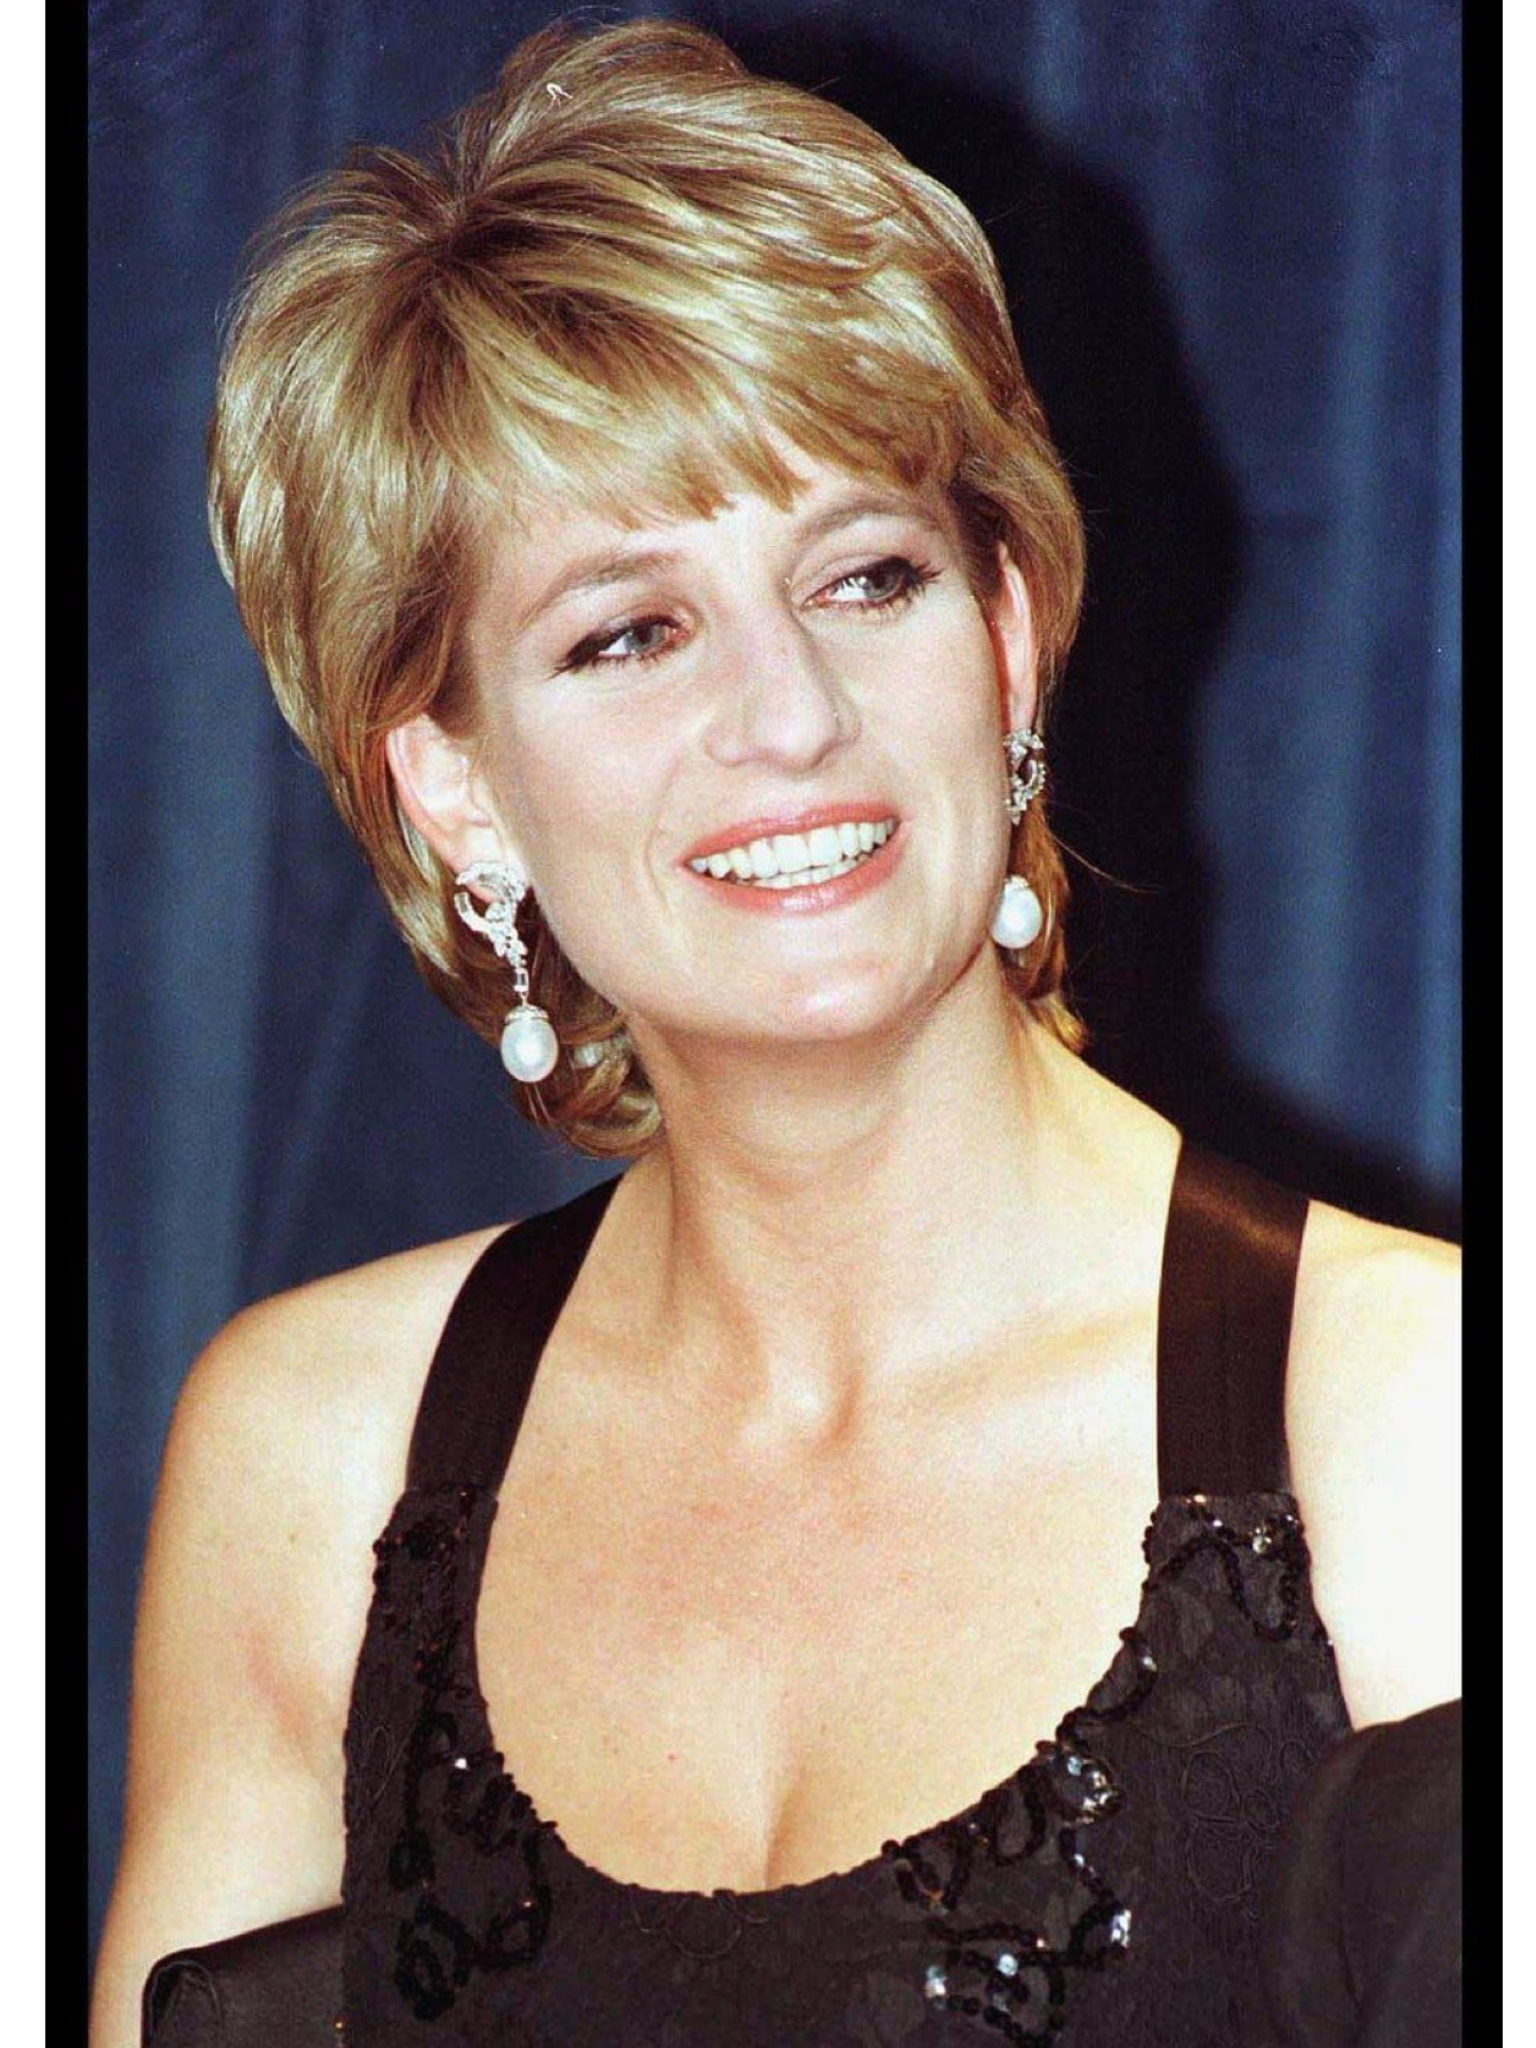 Pin By Jimmie Dugger On Princess Diana Princess Diana Hair Diana Haircut Princess Diana Photos